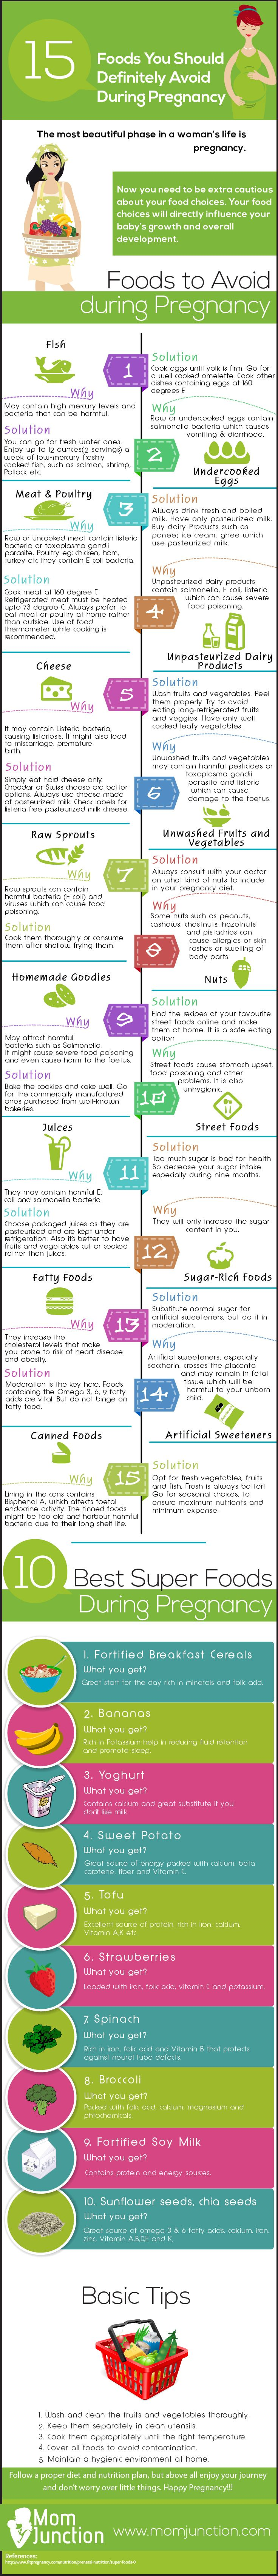 25 Foods You Should Definitely Avoid During Pregnancy: Here is our expert guide of 25 foods to be avoided during pregnancy with solutions. To help you make wise food choices to protect and nourish you and your baby. Read through and enjoy a healthy pregnancy